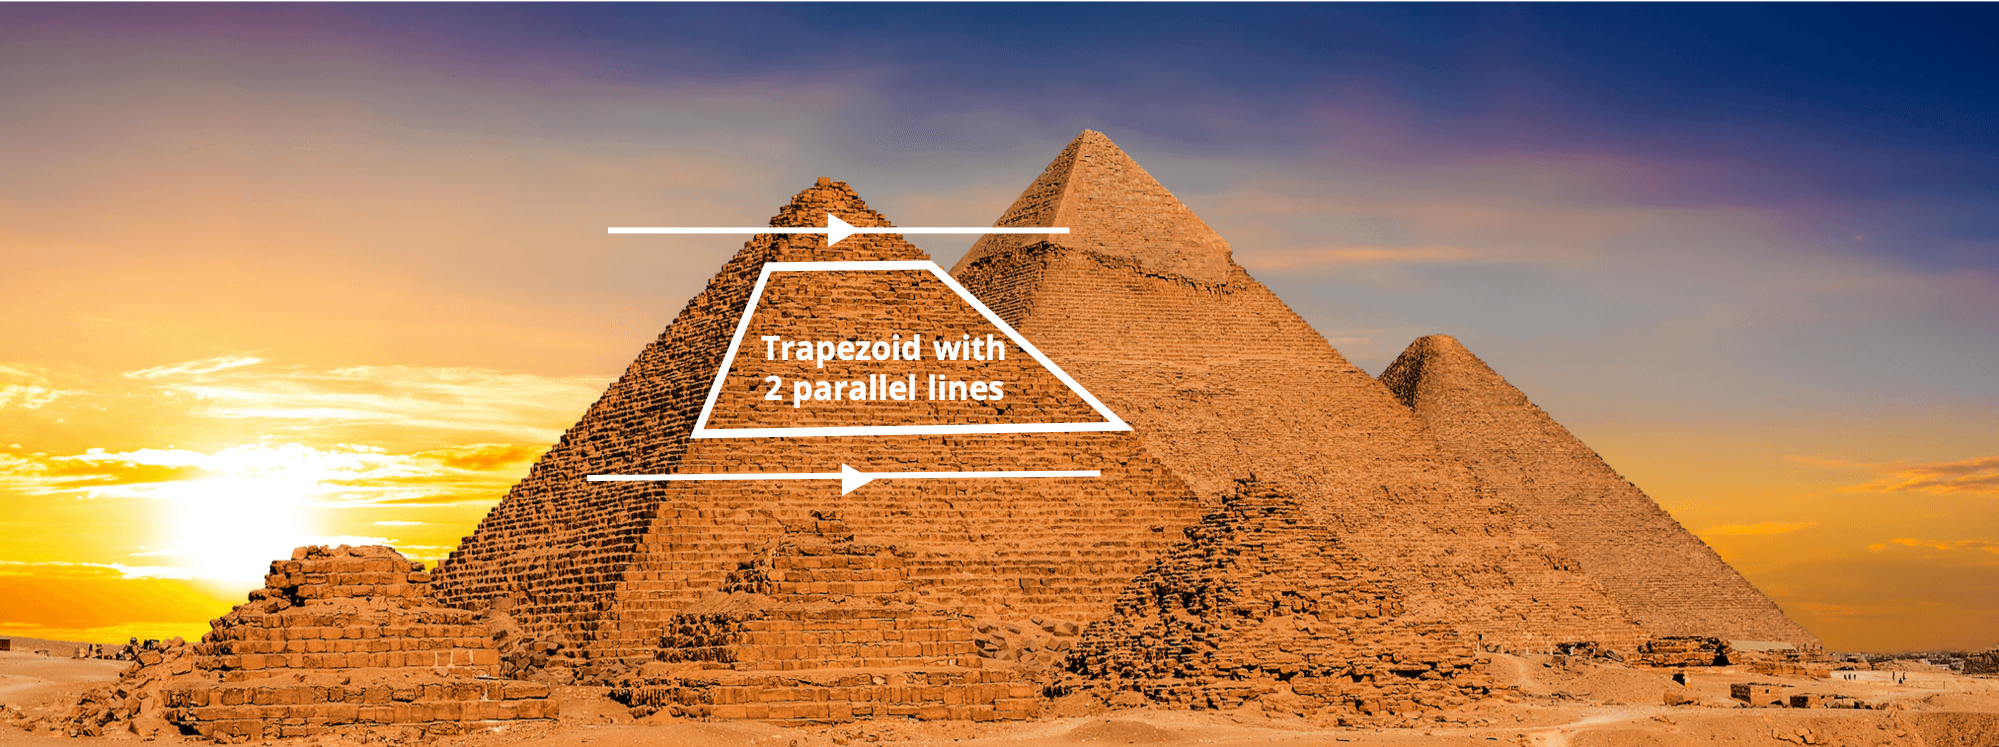 S-5!® Trapezoid Shape on Ancient Pyramids